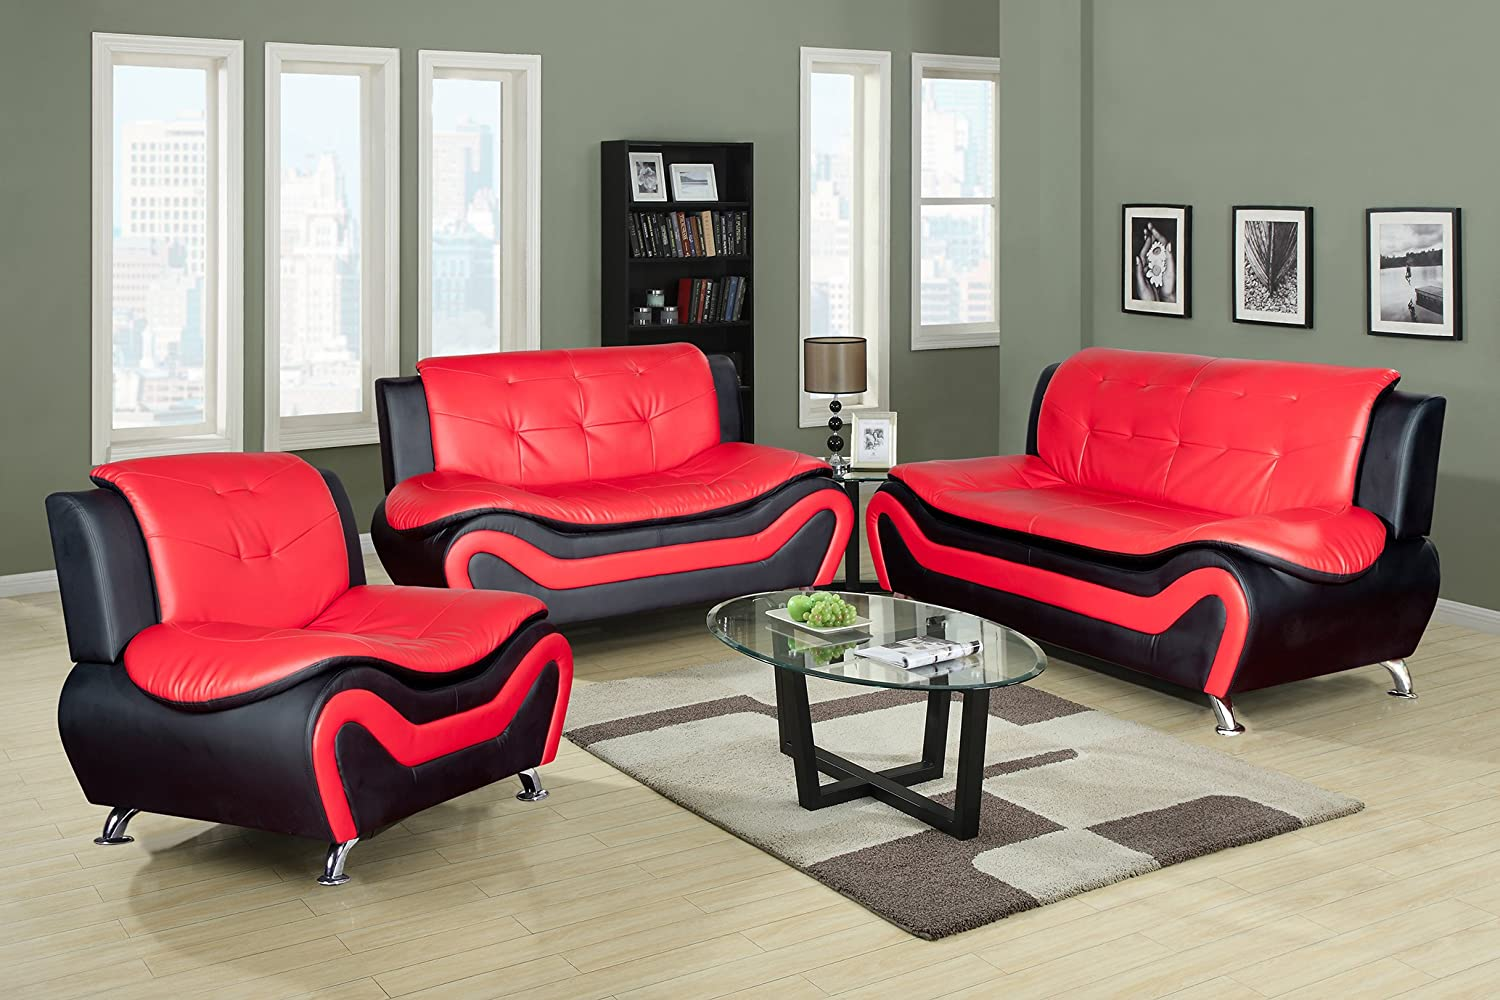 Home Garden Collections 3 Piece Faux Leather Contemporary Living Room Sofa, Love Seat, Chair Set, Black/Red